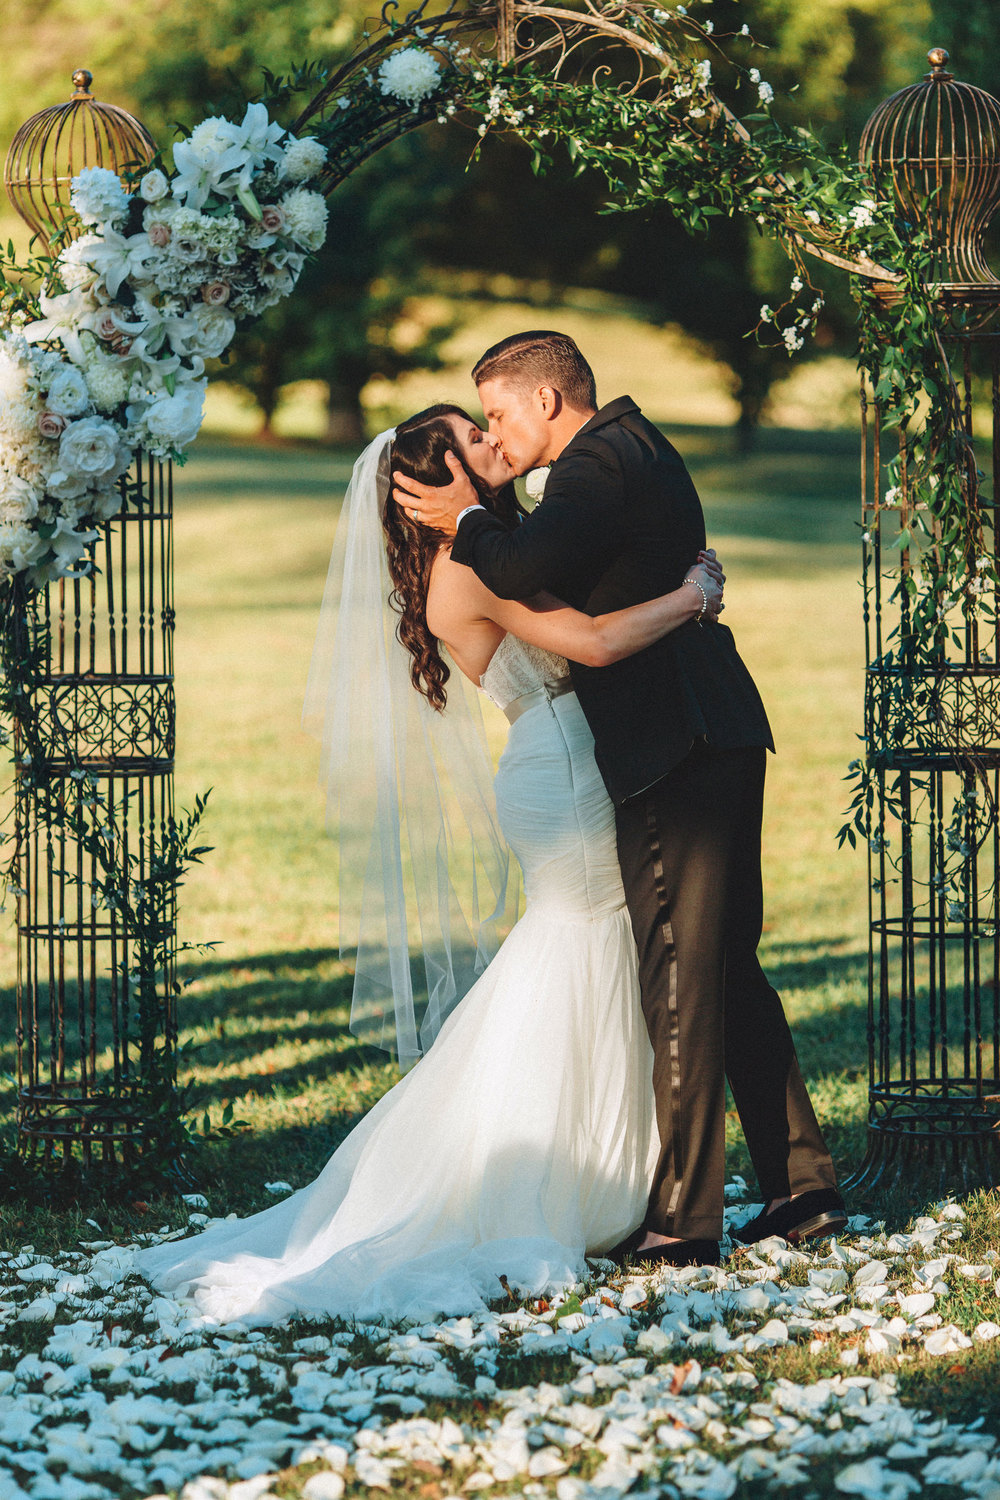 Me & Mr. Jones Wedding, Love Veil, First Kiss, Rustic Glam Wedding, Ballet Veil, Fountain Veil, Black Tie Wedding, Floral Arch at the Altar, Rose Petal Aisle, Rustic Arch with Flowers